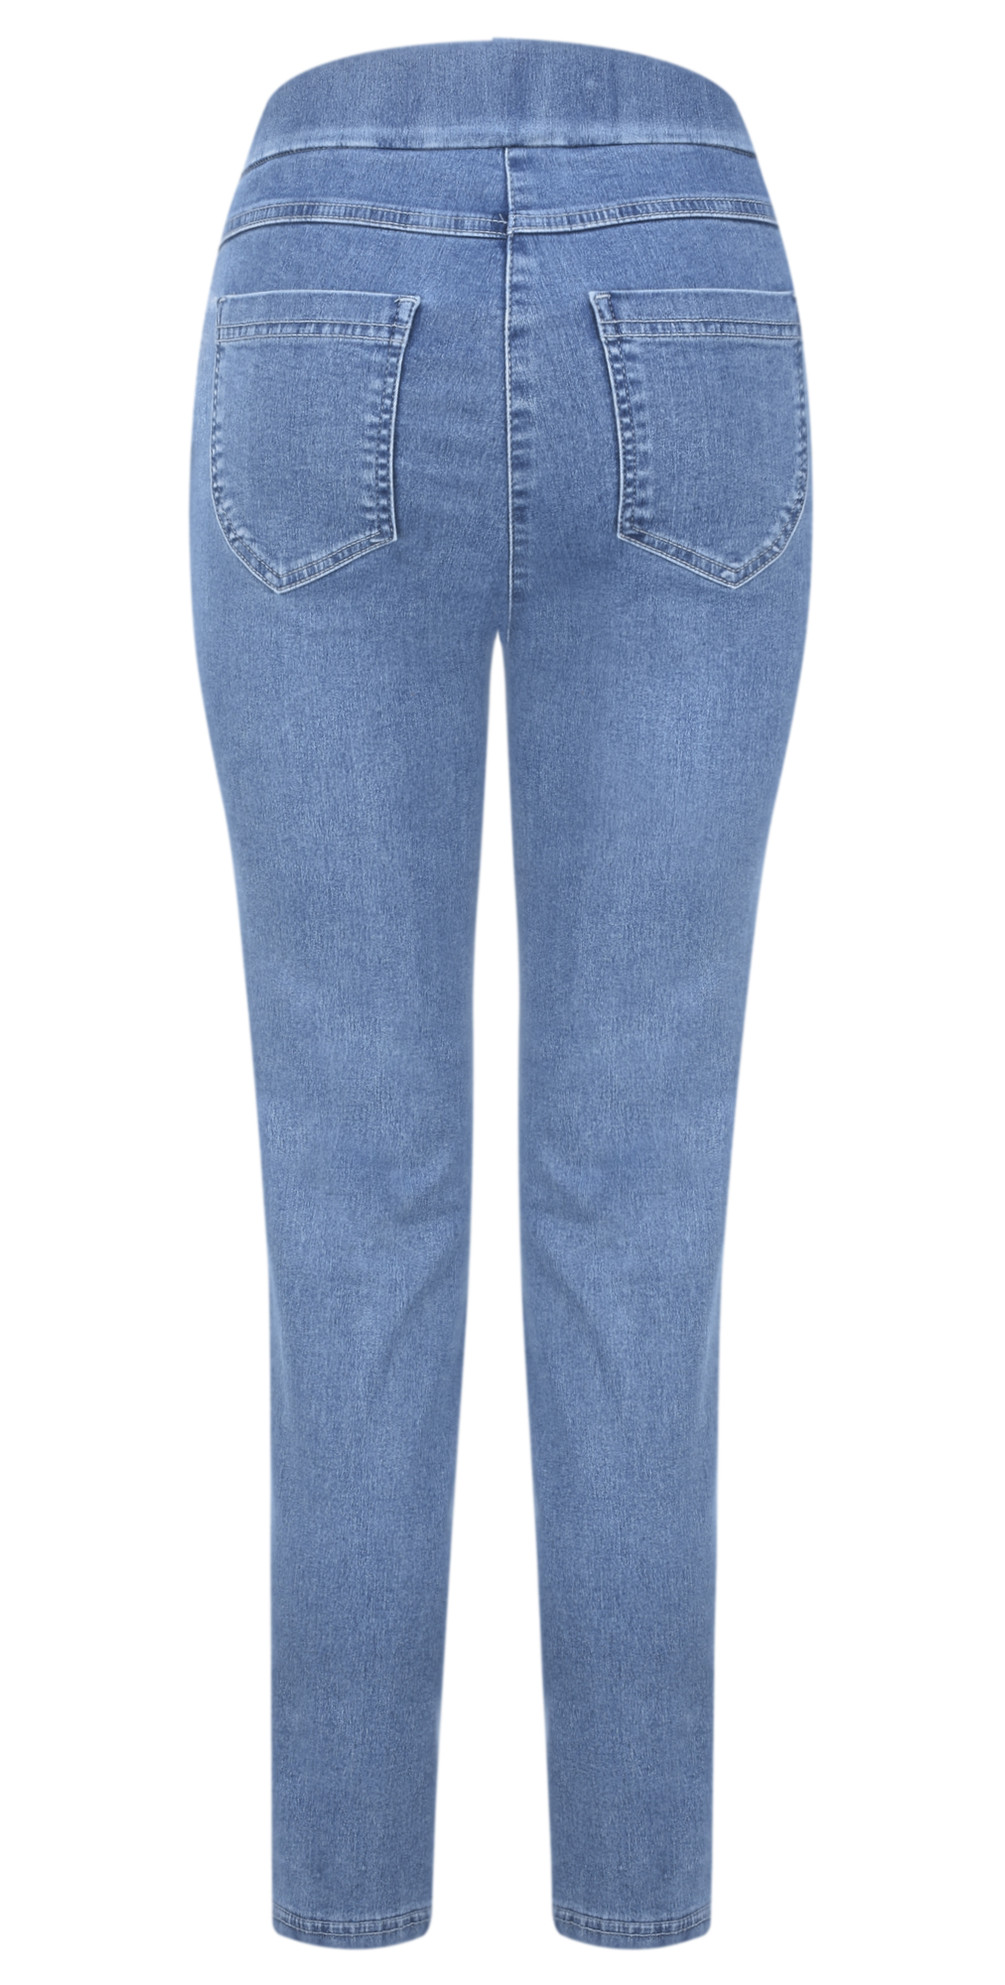 Nena 09 Ankle Zip Cropped Powerstretch Jeans main image